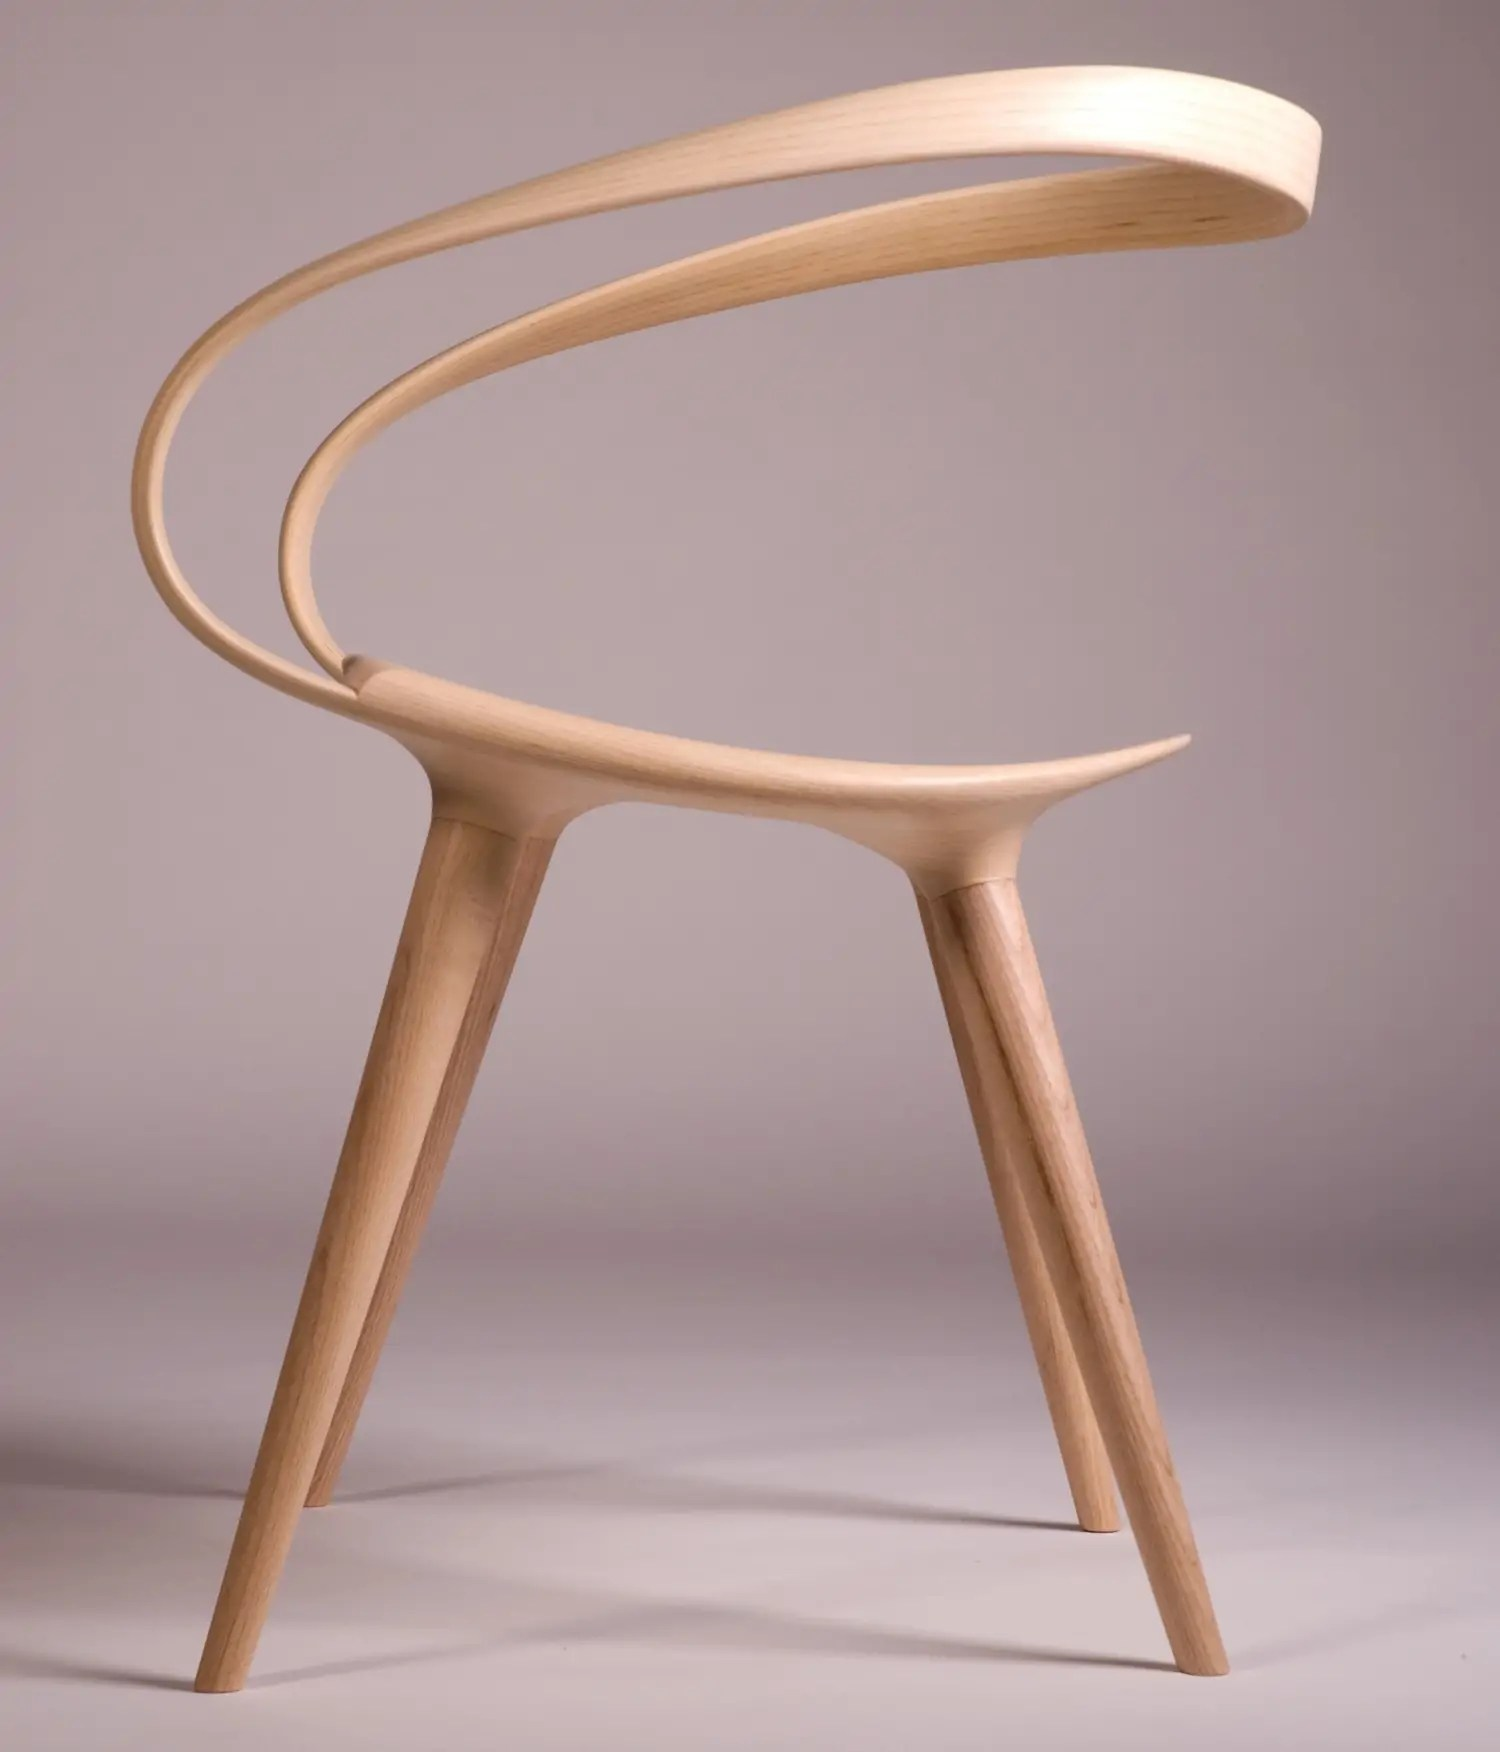 Bent Plywood Chair This Insane Bent Plywood Chair Is Inspired By Modern